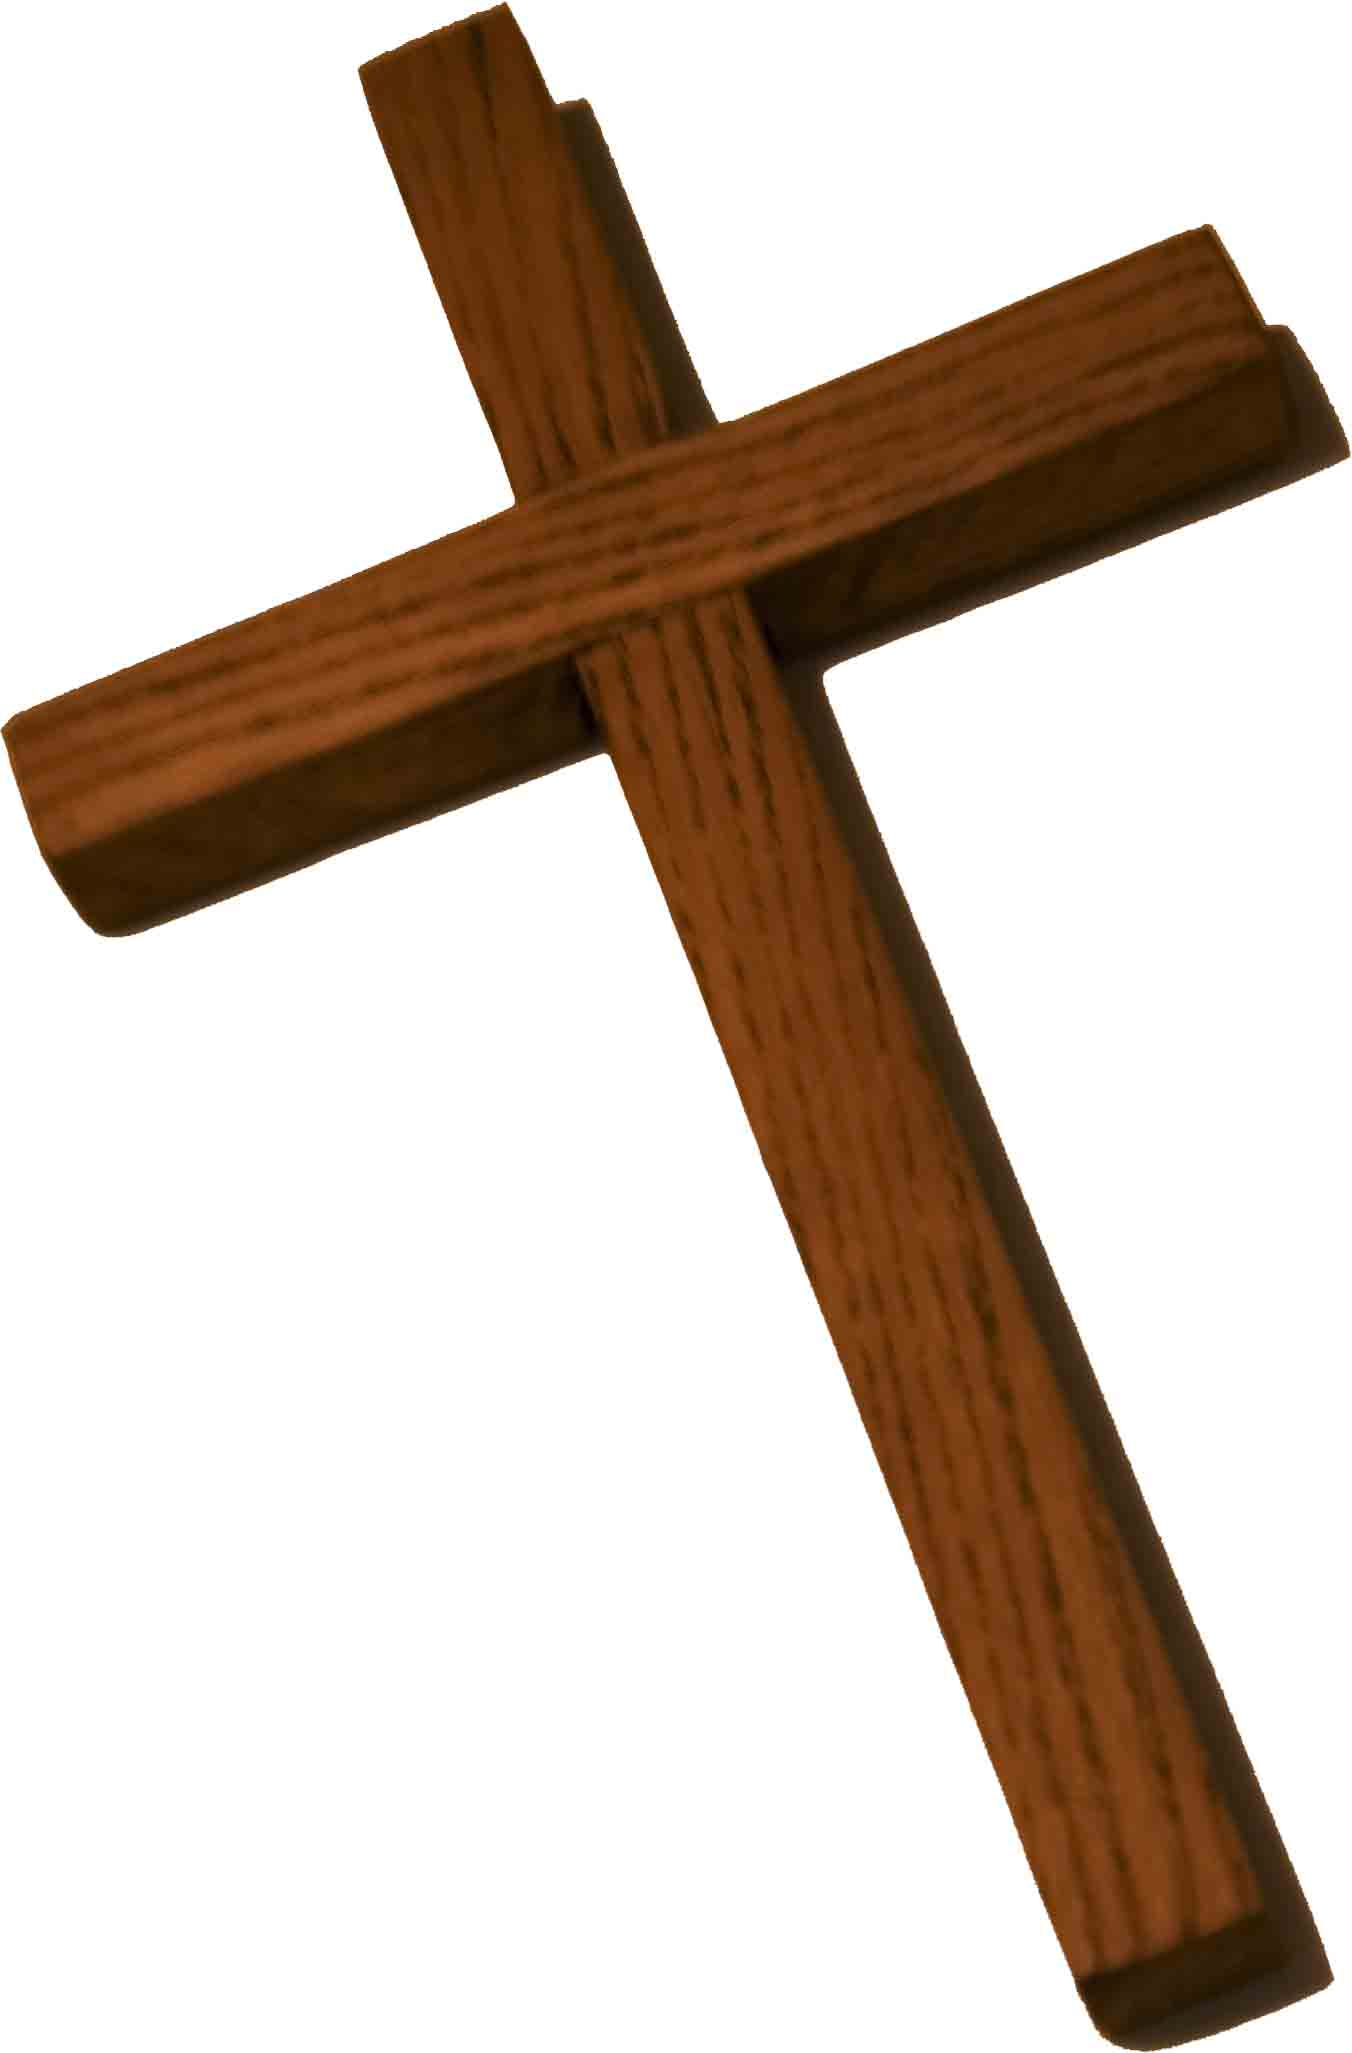 Free Wooden Cross Png, Download Free Clip Art, Free Clip Art.